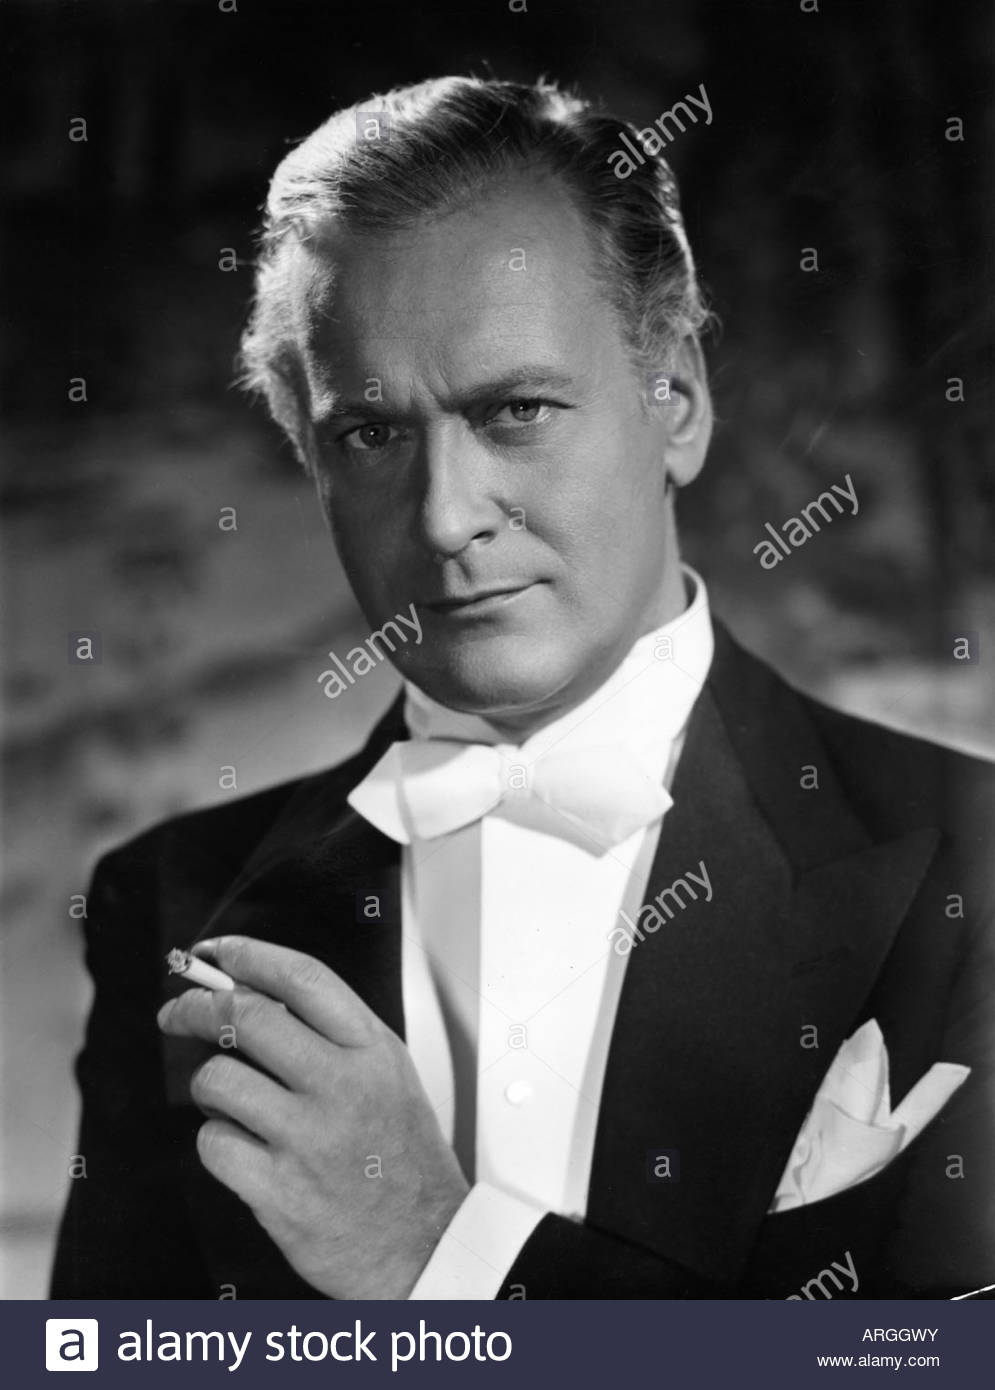 Juergens, Curd, 13.12.1915 - 18.6.1982, German actor, portrait, PR photo for movie, 'Everything for Dad' - Stock Image